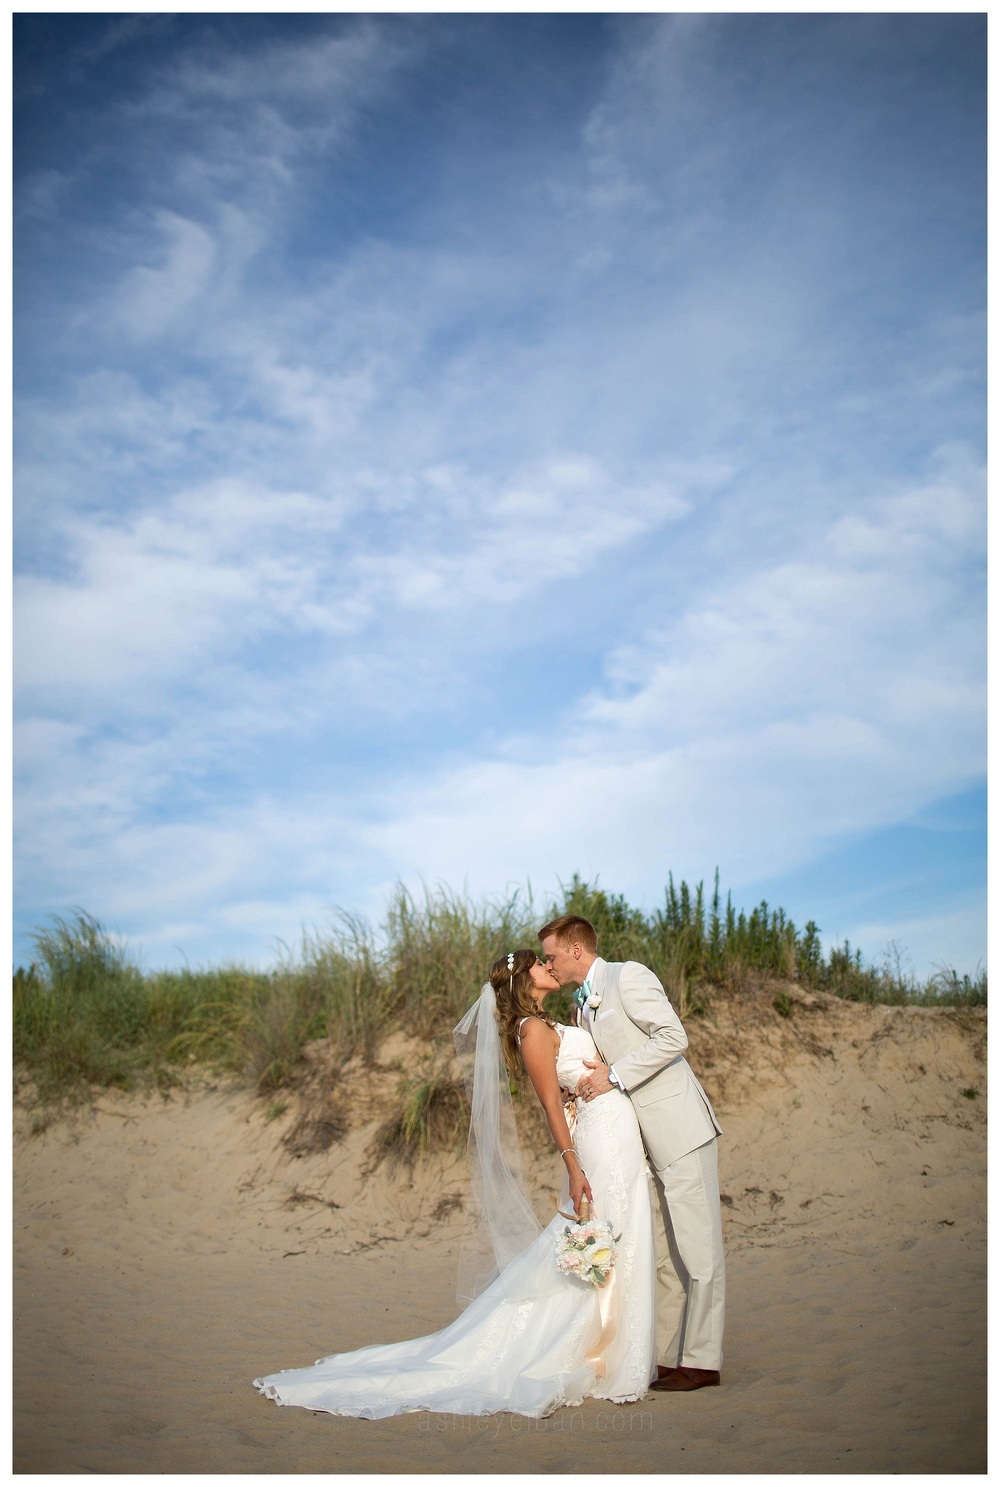 Nassau Valley Vineyard Wedding || Lewes, DE Wedding || Vineyard Wedding || Beach Wedding || Ashley Eiban Photography || www.ashleyeiban.com